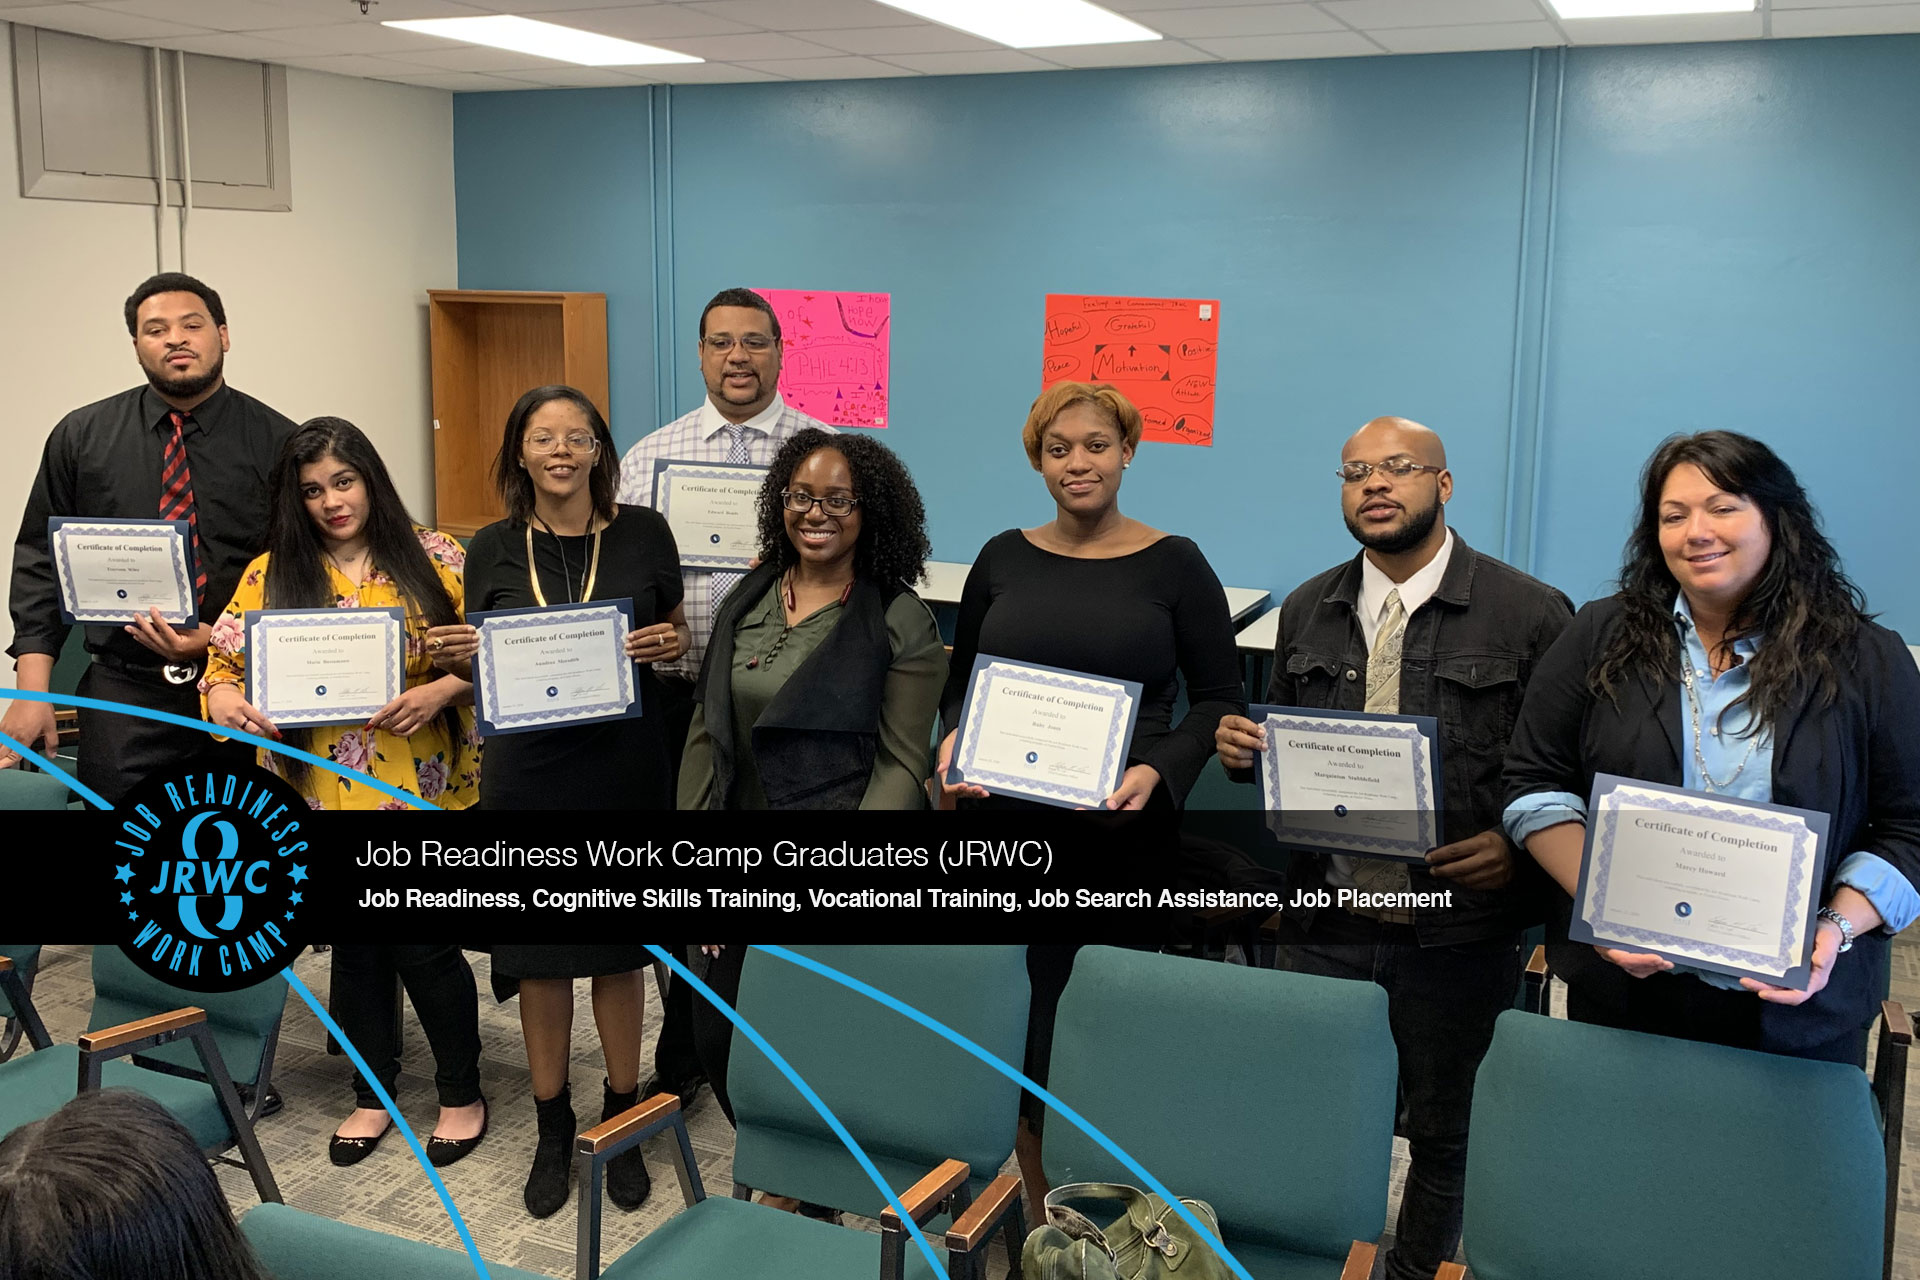 Oasis Center Job Readiness Work Camp JRWC January 2020 Graduation